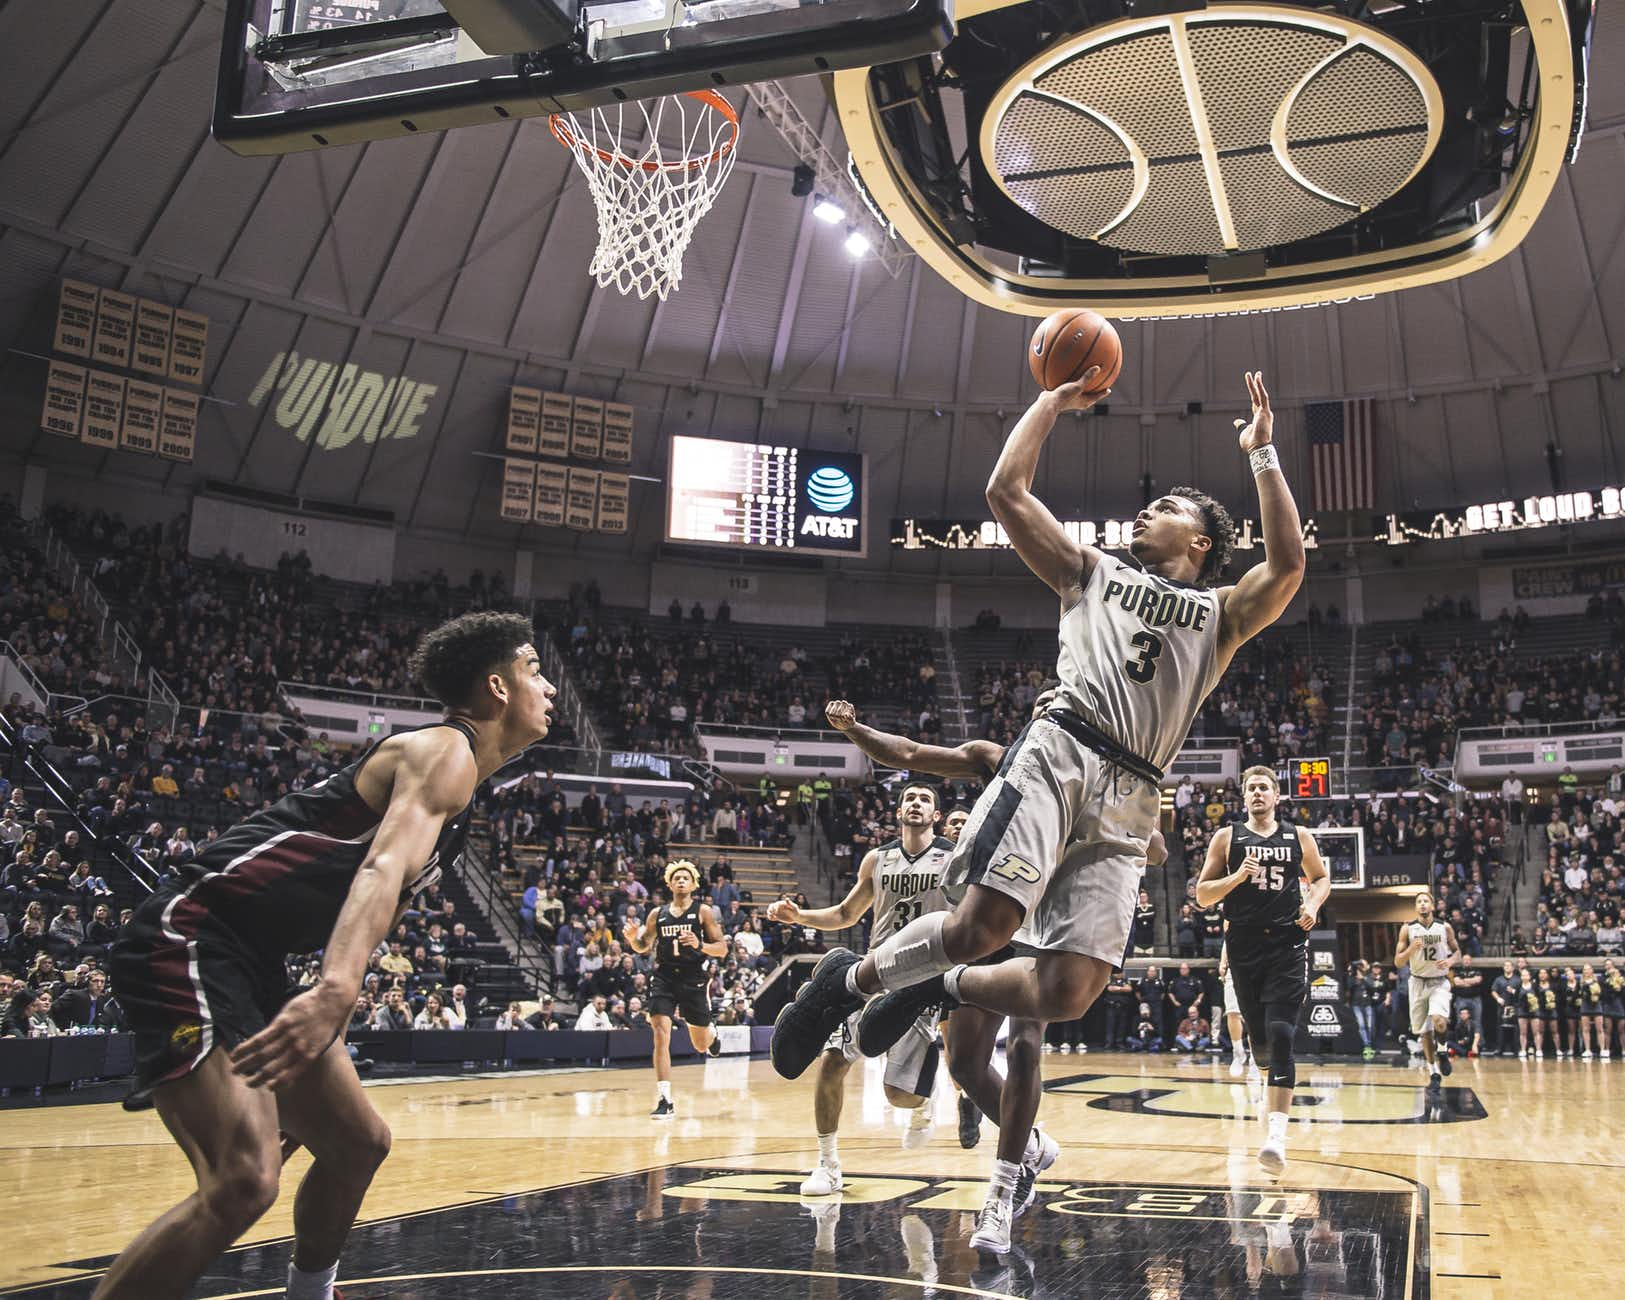 I don't know either, but this one went in too. Check the pbp if you don't believe it - 8:29, Carsen Edwards makes two point layup (Isaac Haas assists).